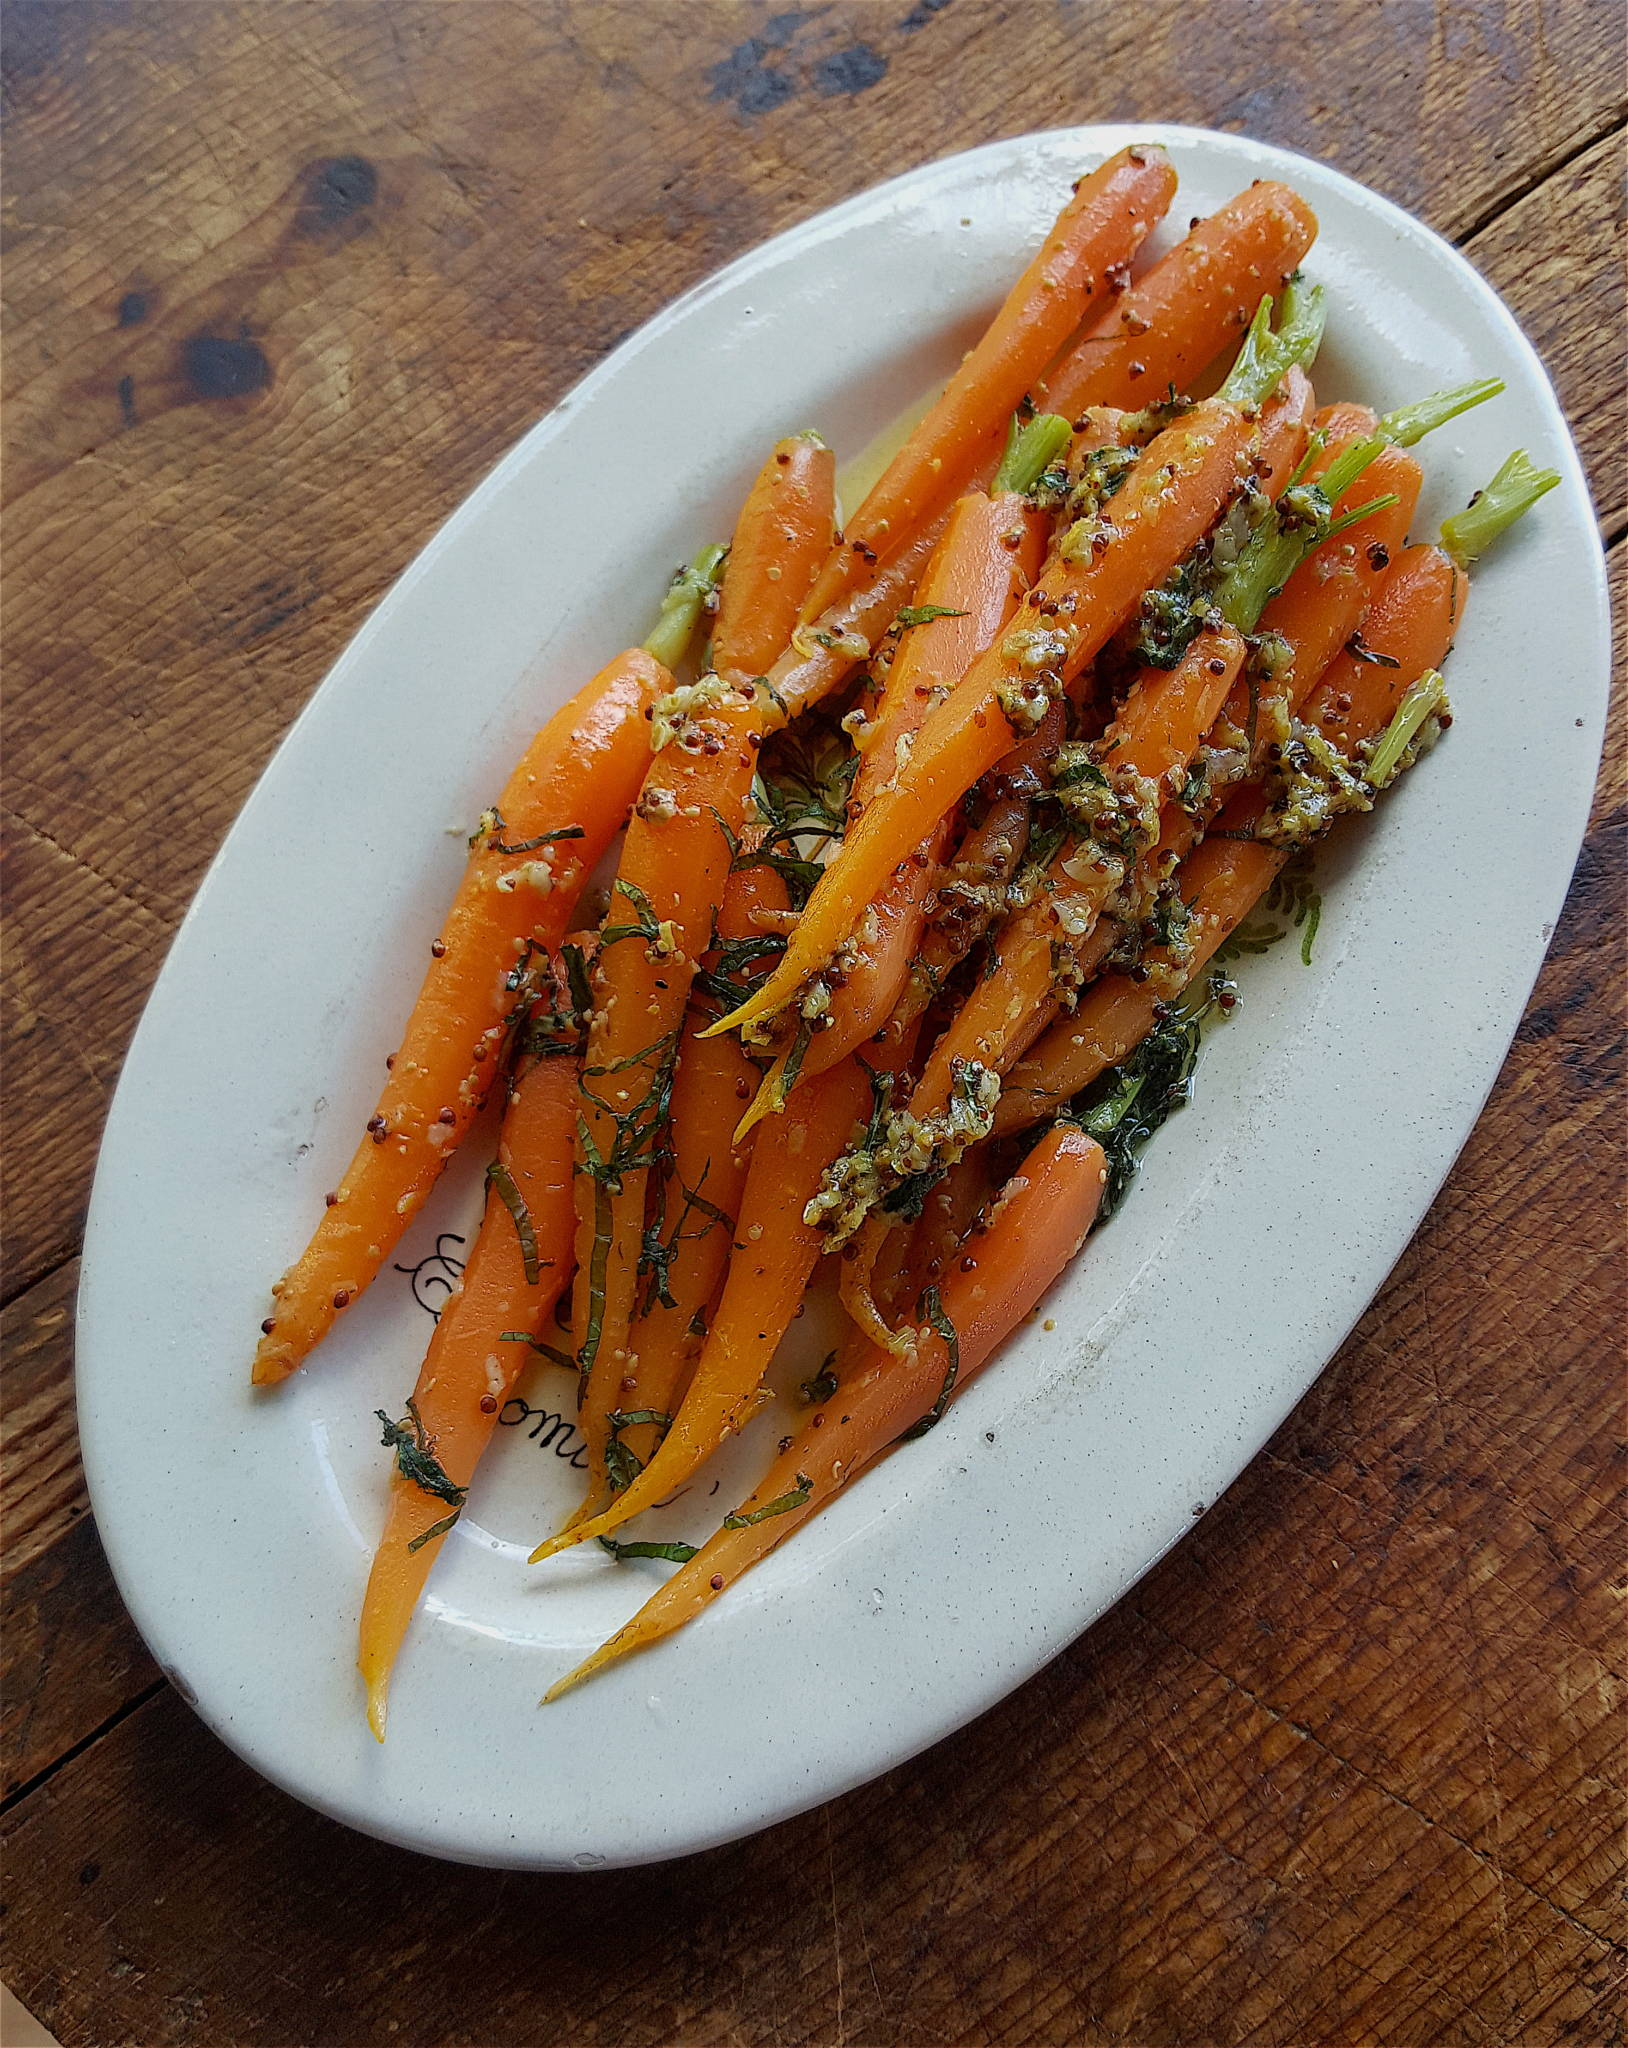 Warm Carrot Salad with Mustard Vinaigrette